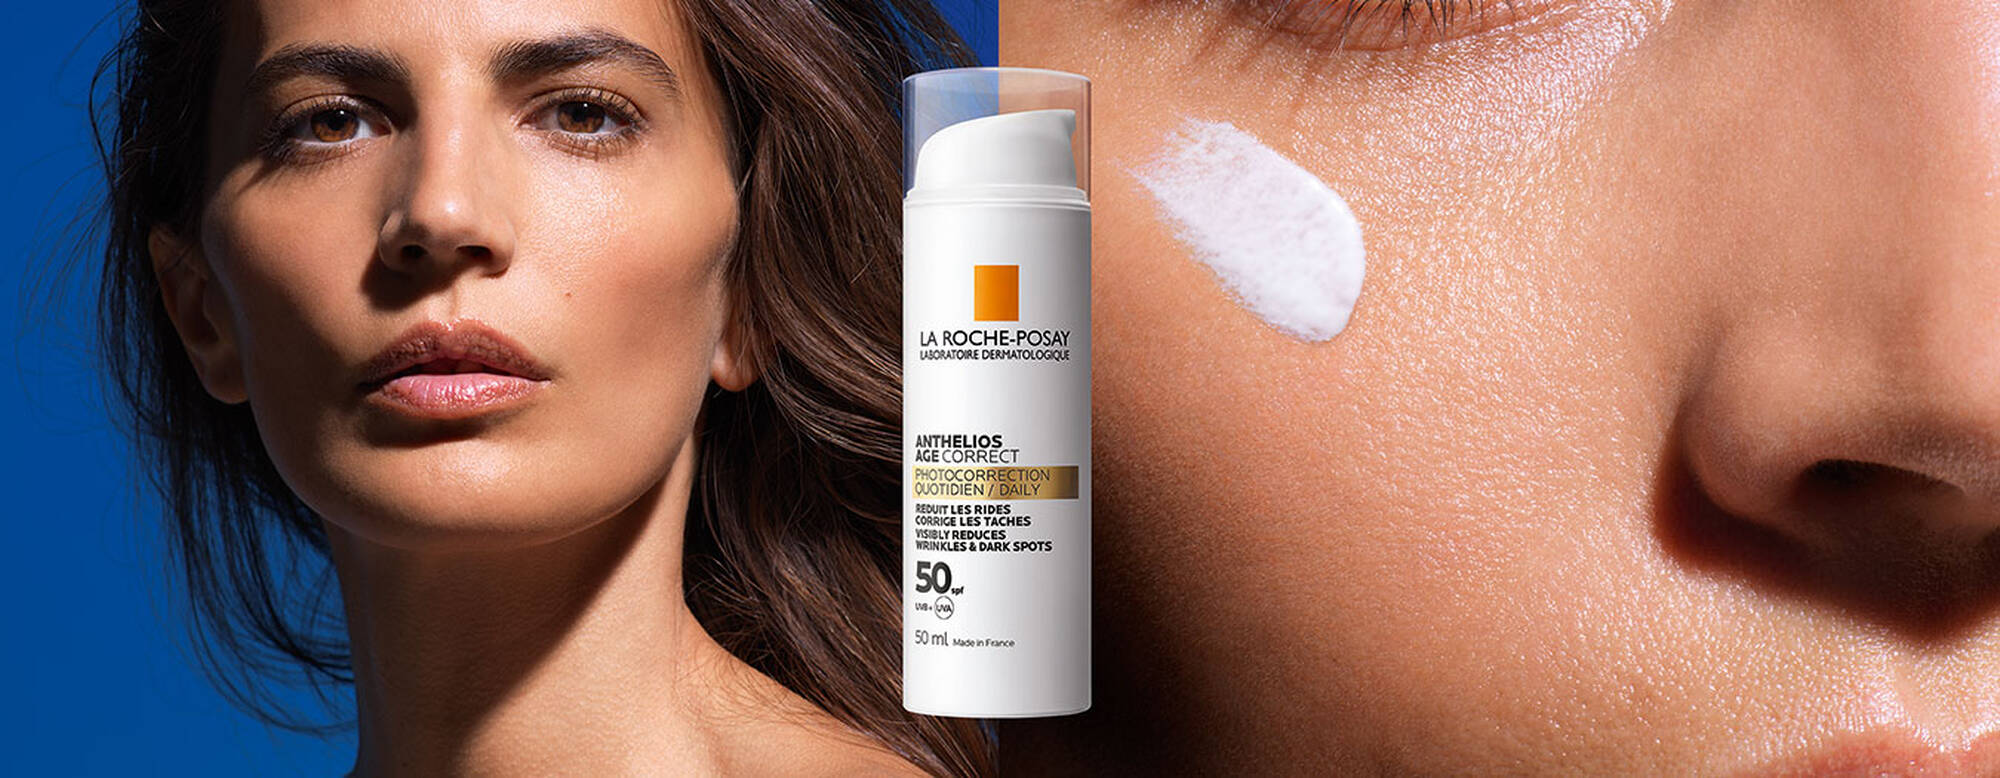 Introducing our NEW Anthelios Age-Correct SPF50